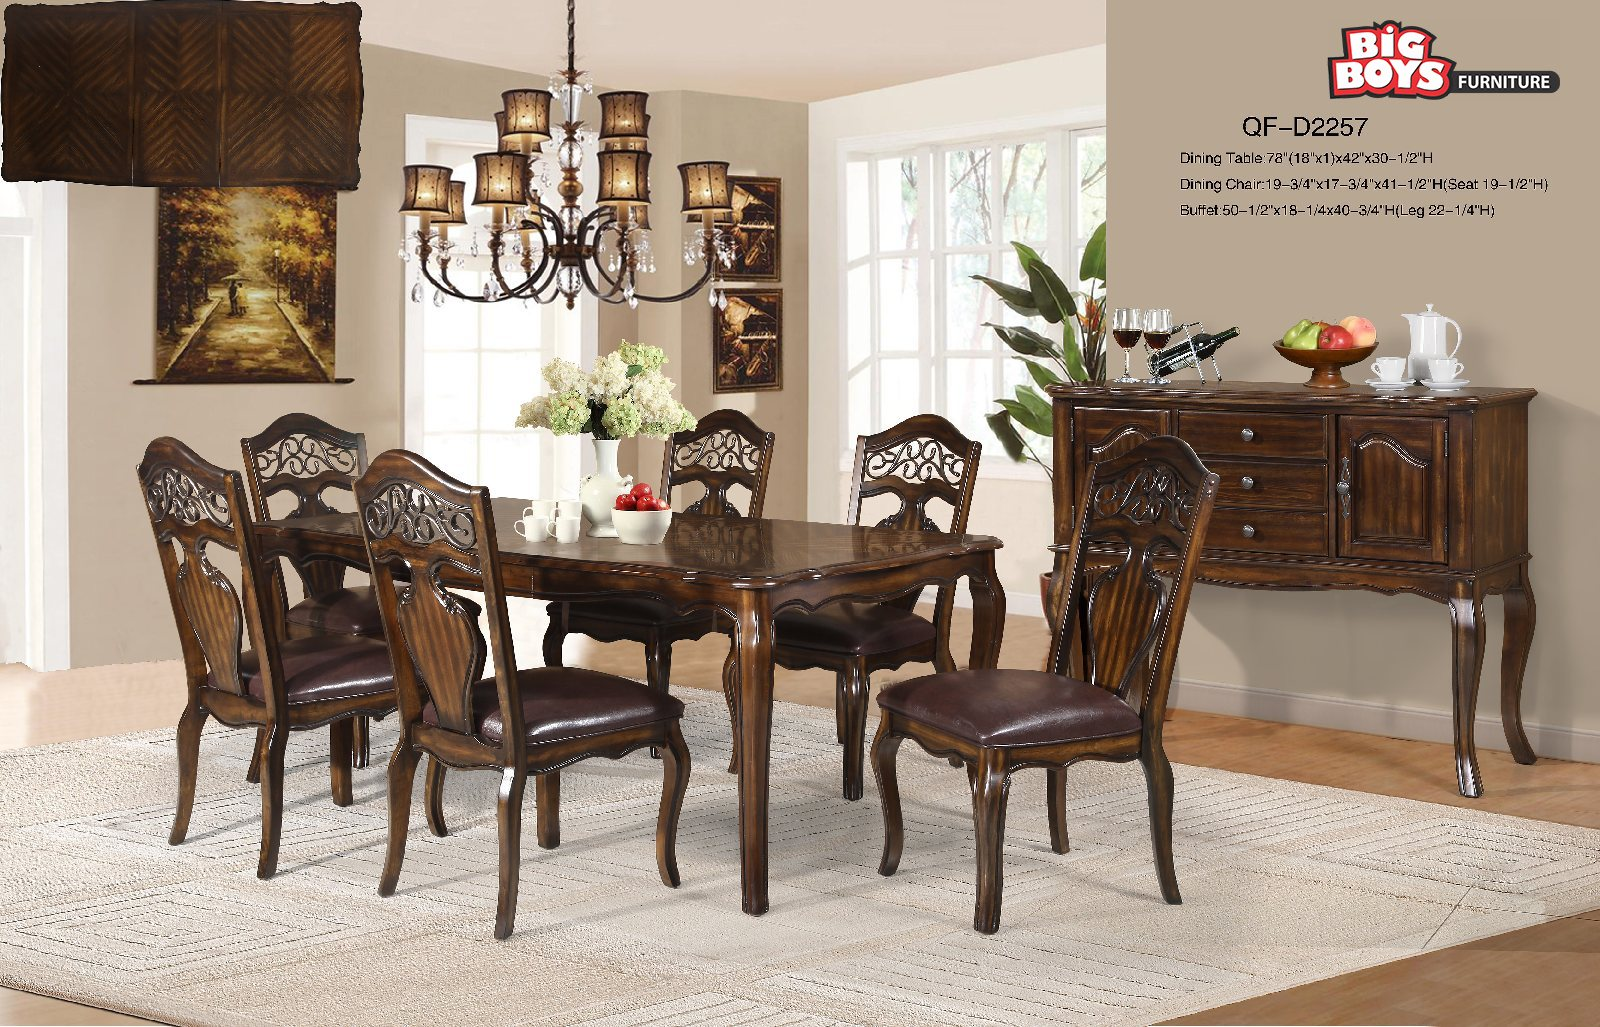 Dining set s at best prices available at Big Boys Furniture Delta/Surrey